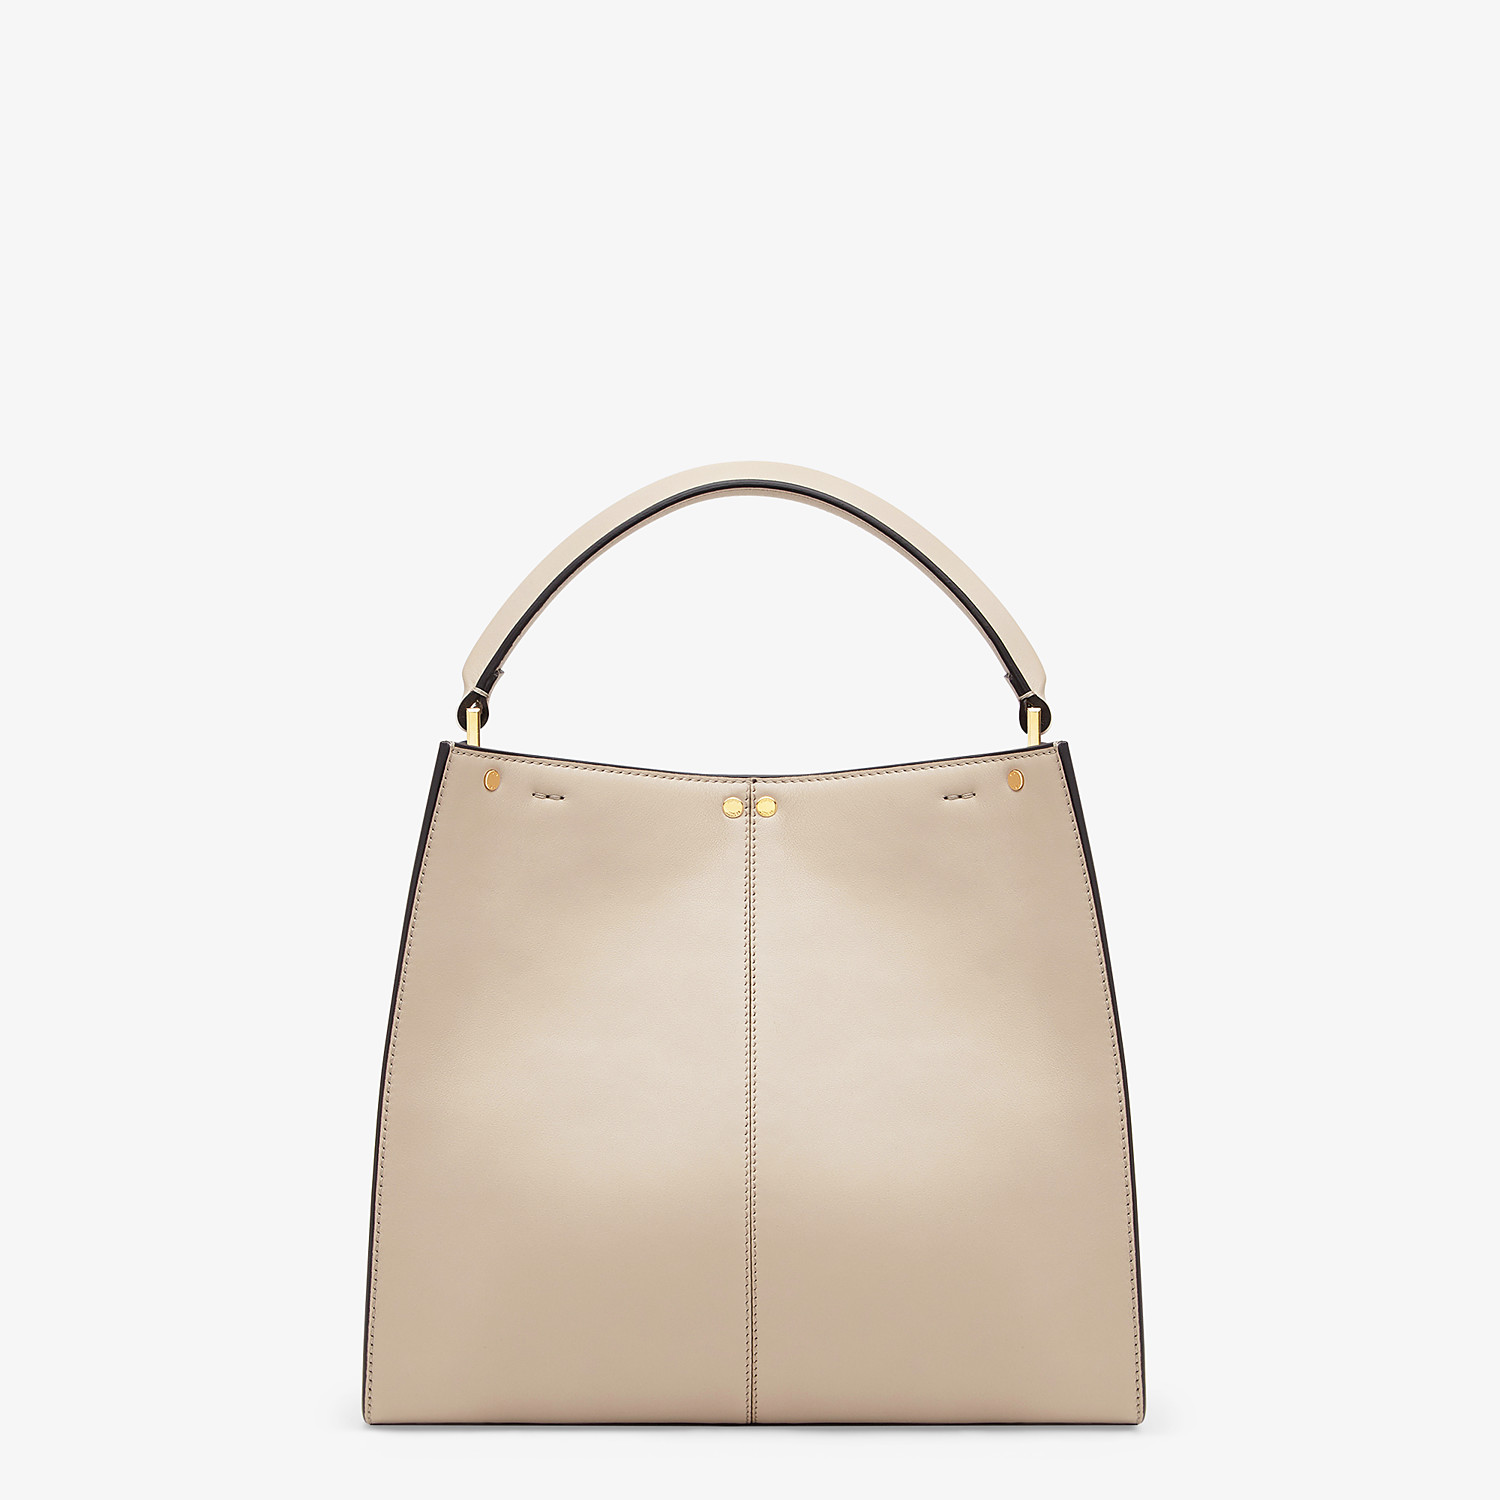 FENDI MEDIUM PEEKABOO X-LITE - Beige leather bag - view 4 detail